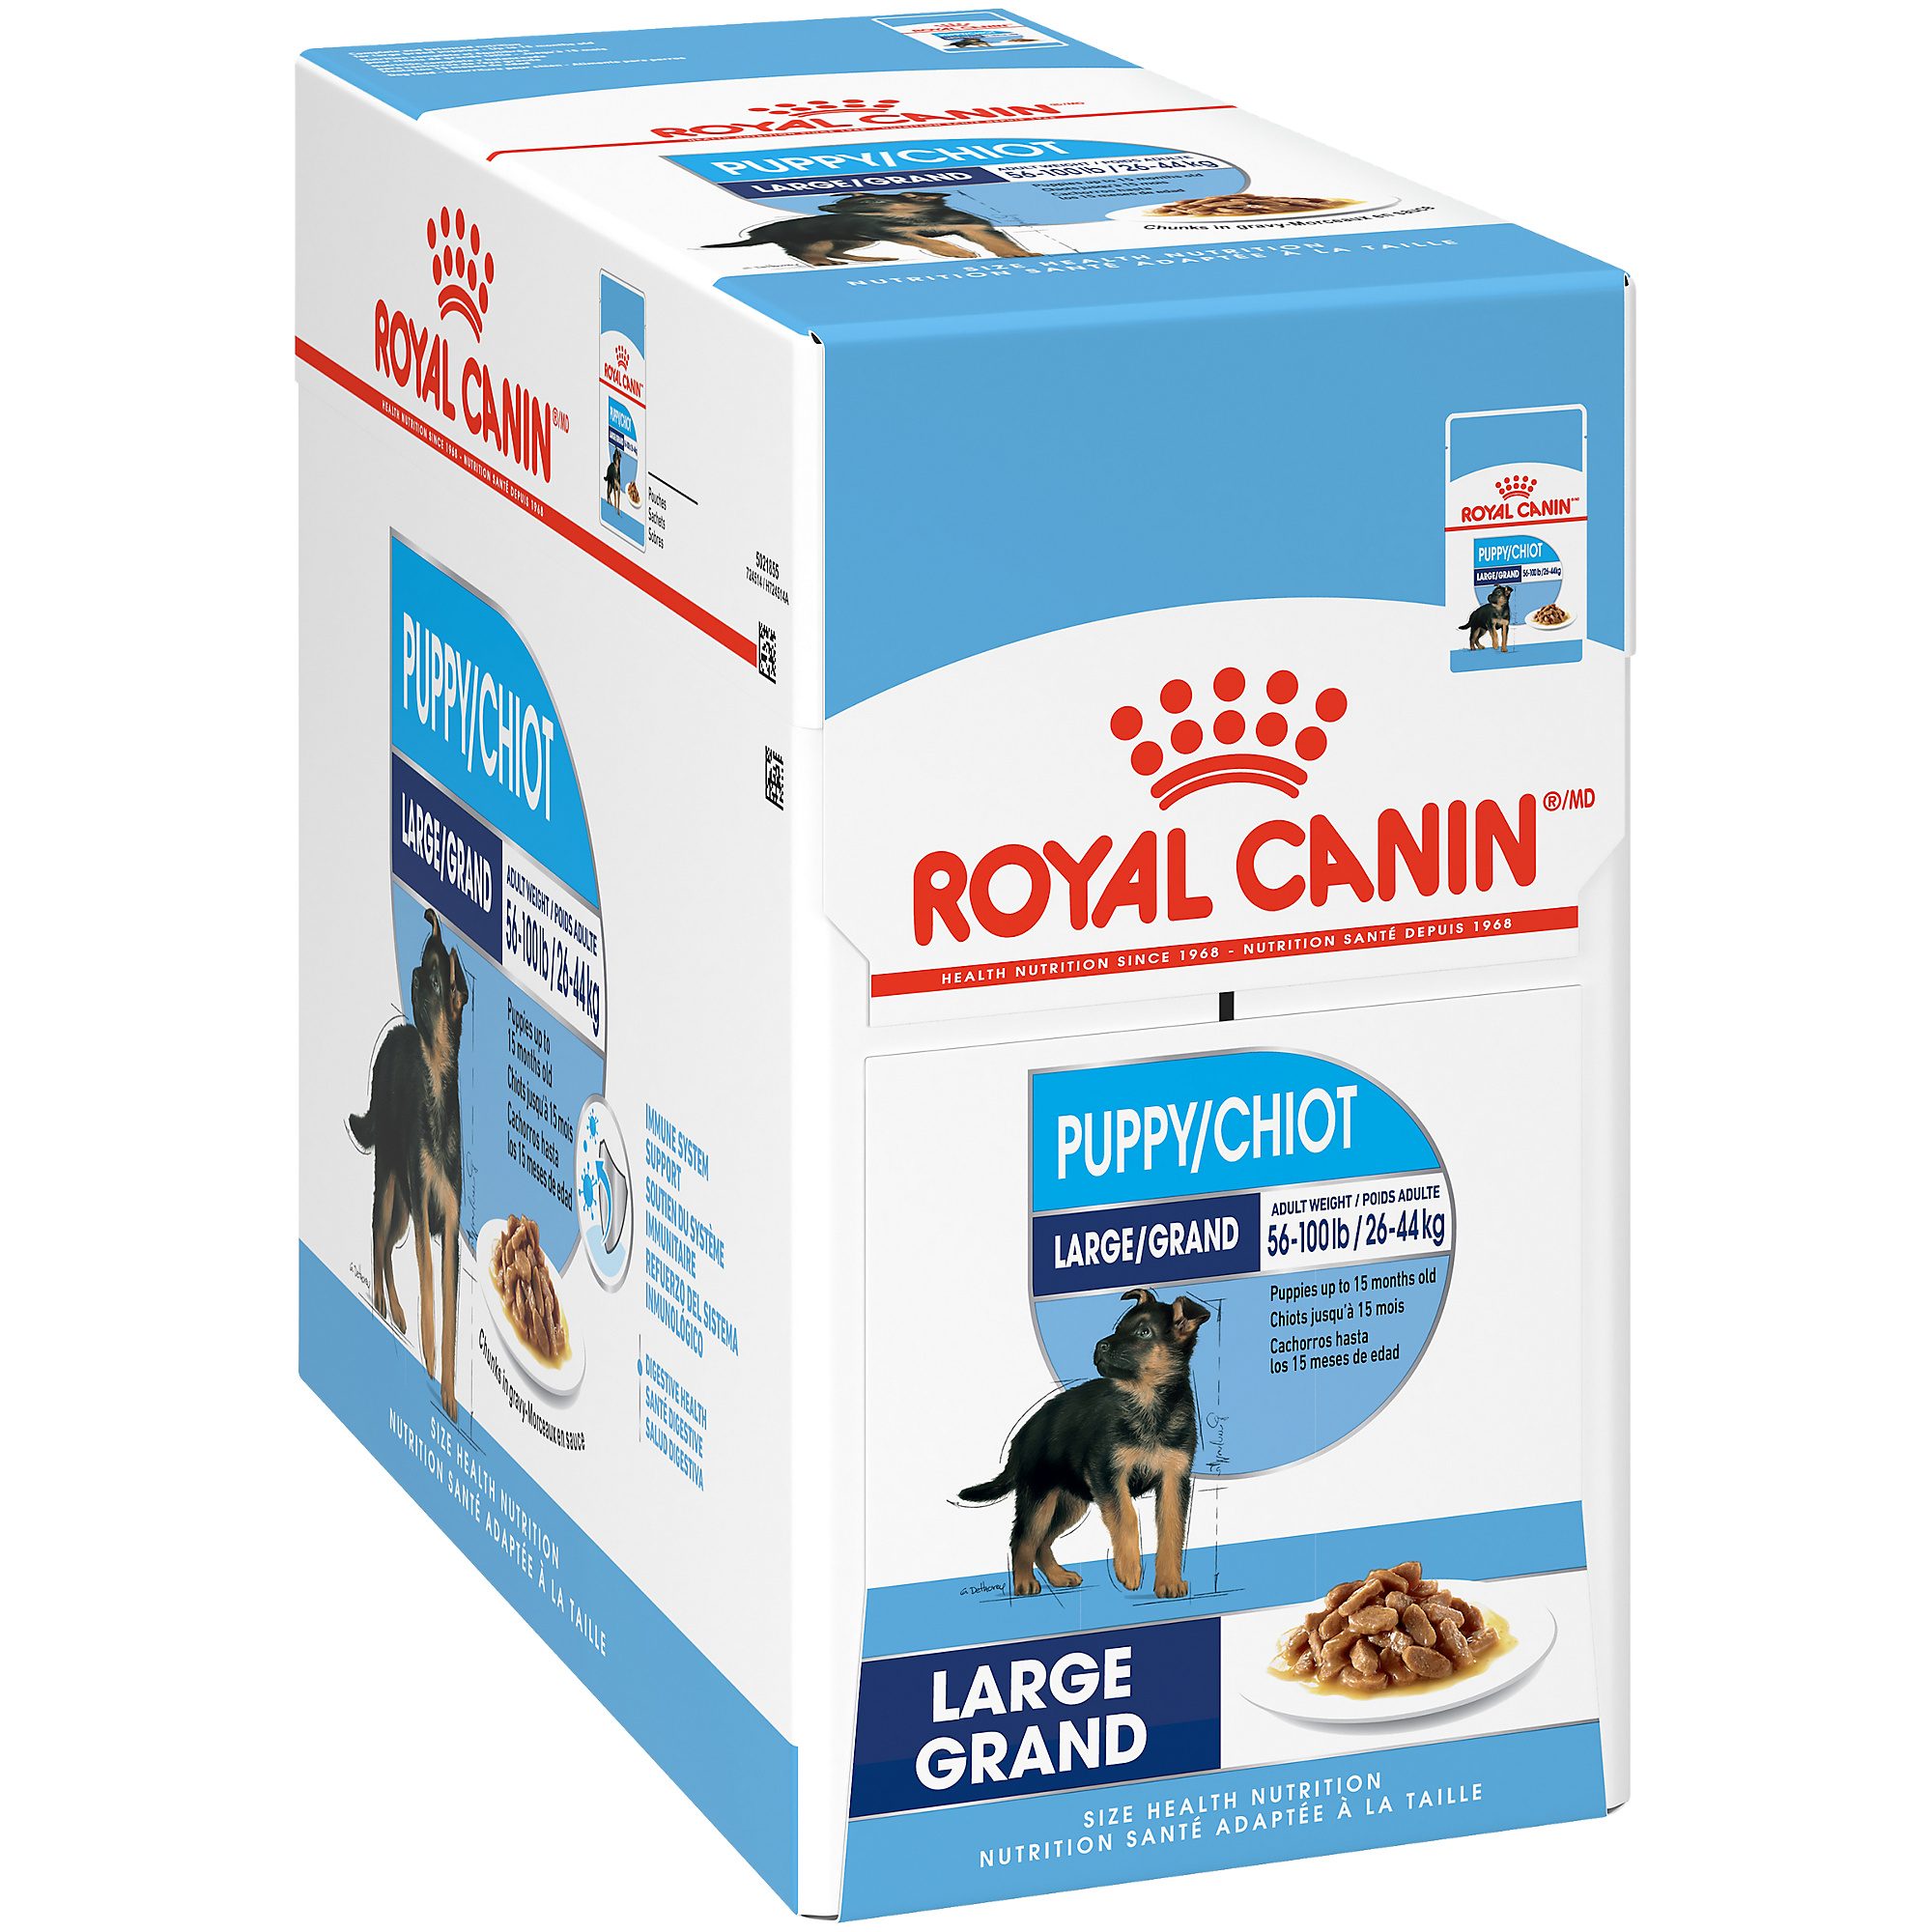 Royal Canin Size Health Nutrition Large Puppy Pouch Dog Food